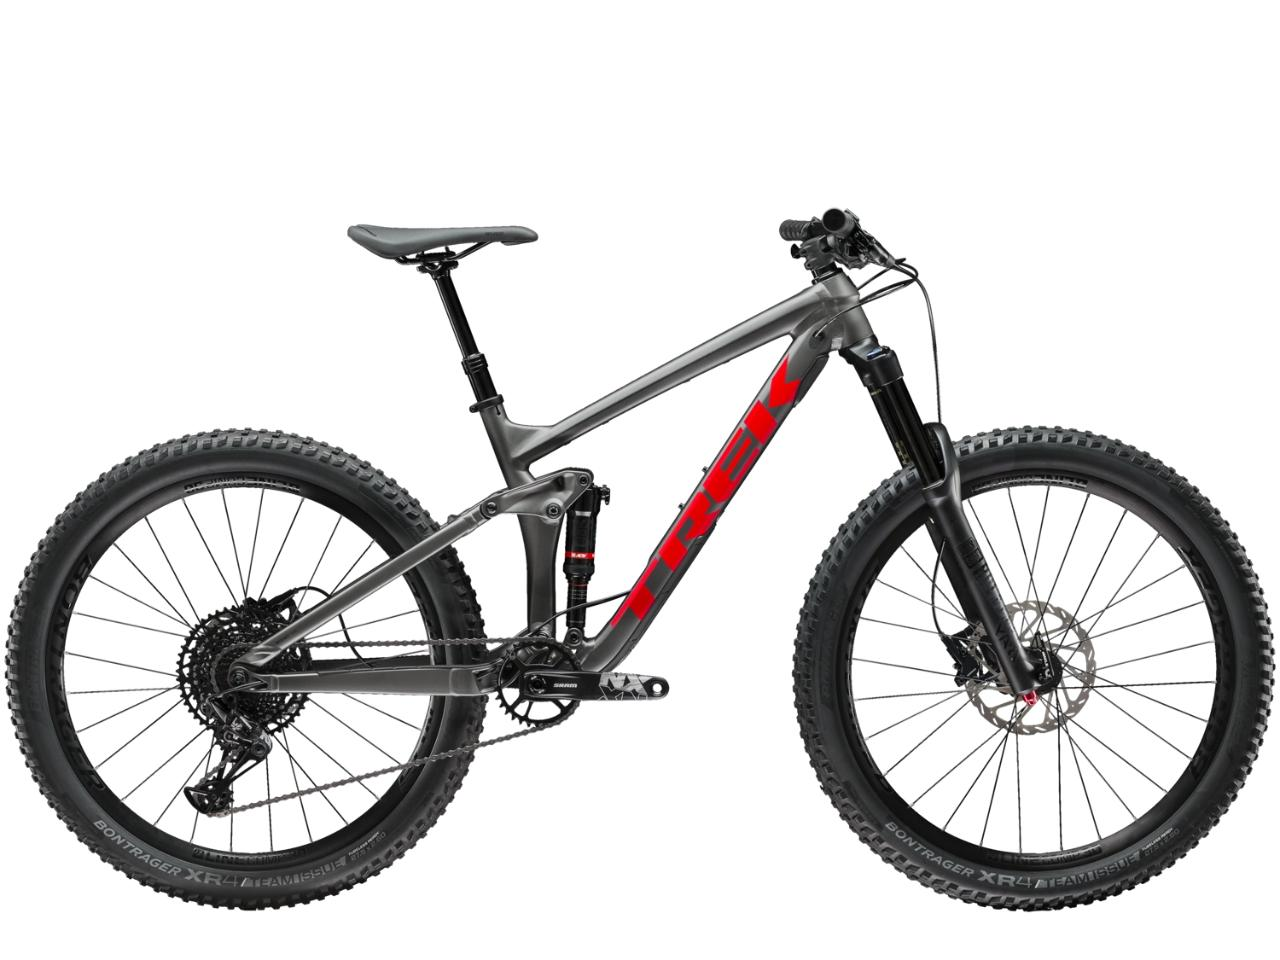 MT BULLER | Dual Suspension Mountain Bike - Small